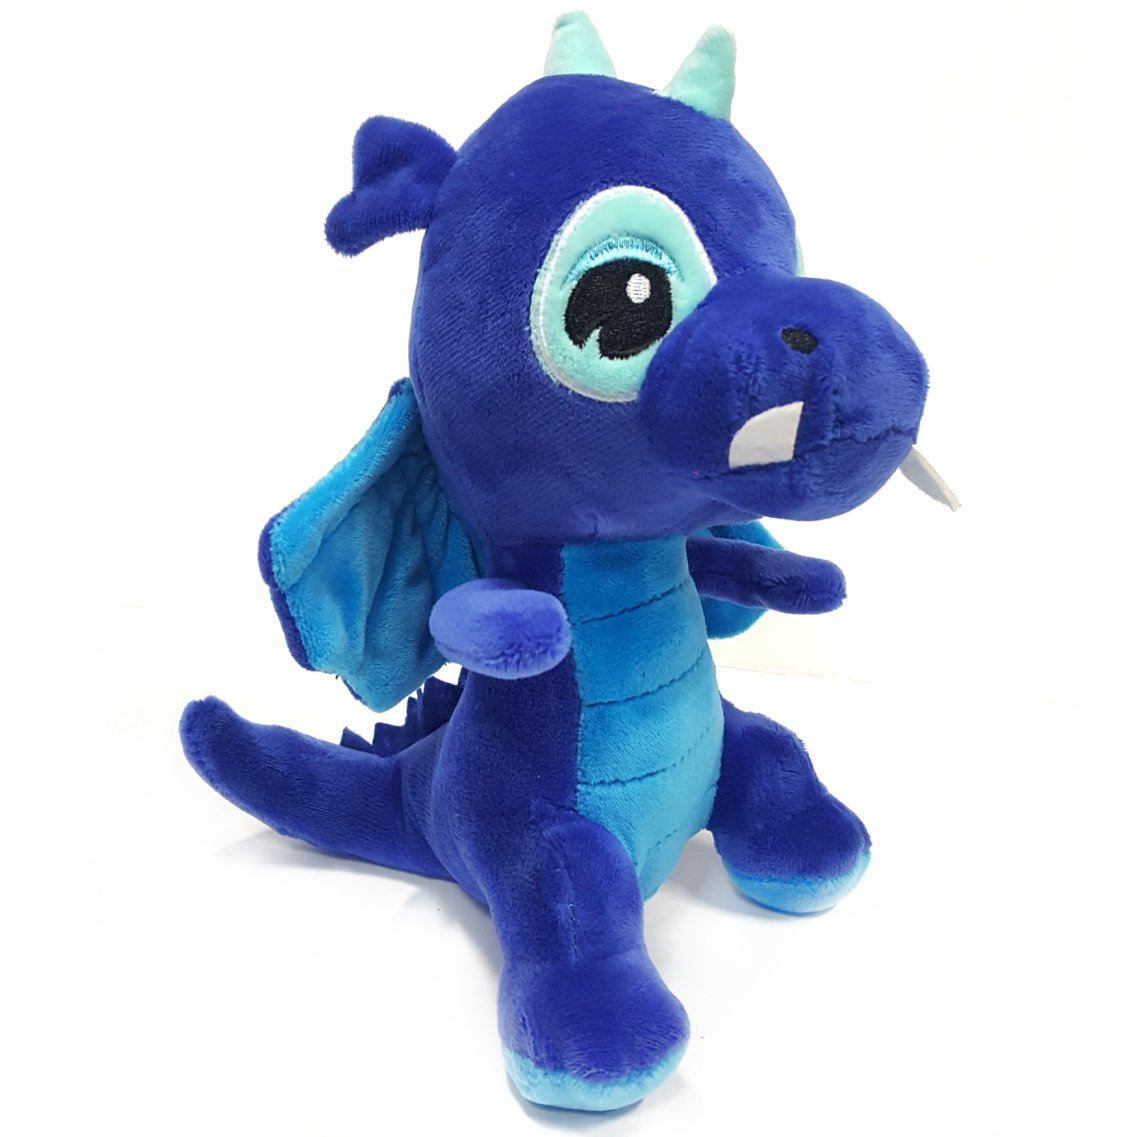 23cm Blue Dragon Cuddly Soft Toy just £3.99! Buy Online...Worldwide Delivery!  https://www. bluefrogtoys.co.uk/soft-toys/wild -animals/dinosaur-soft-toys/23cm-blue-dragon-cuddly-soft-toy-detail &nbsp; …  #dragons #giftideas #birthday<br>http://pic.twitter.com/AP84jWZBqN